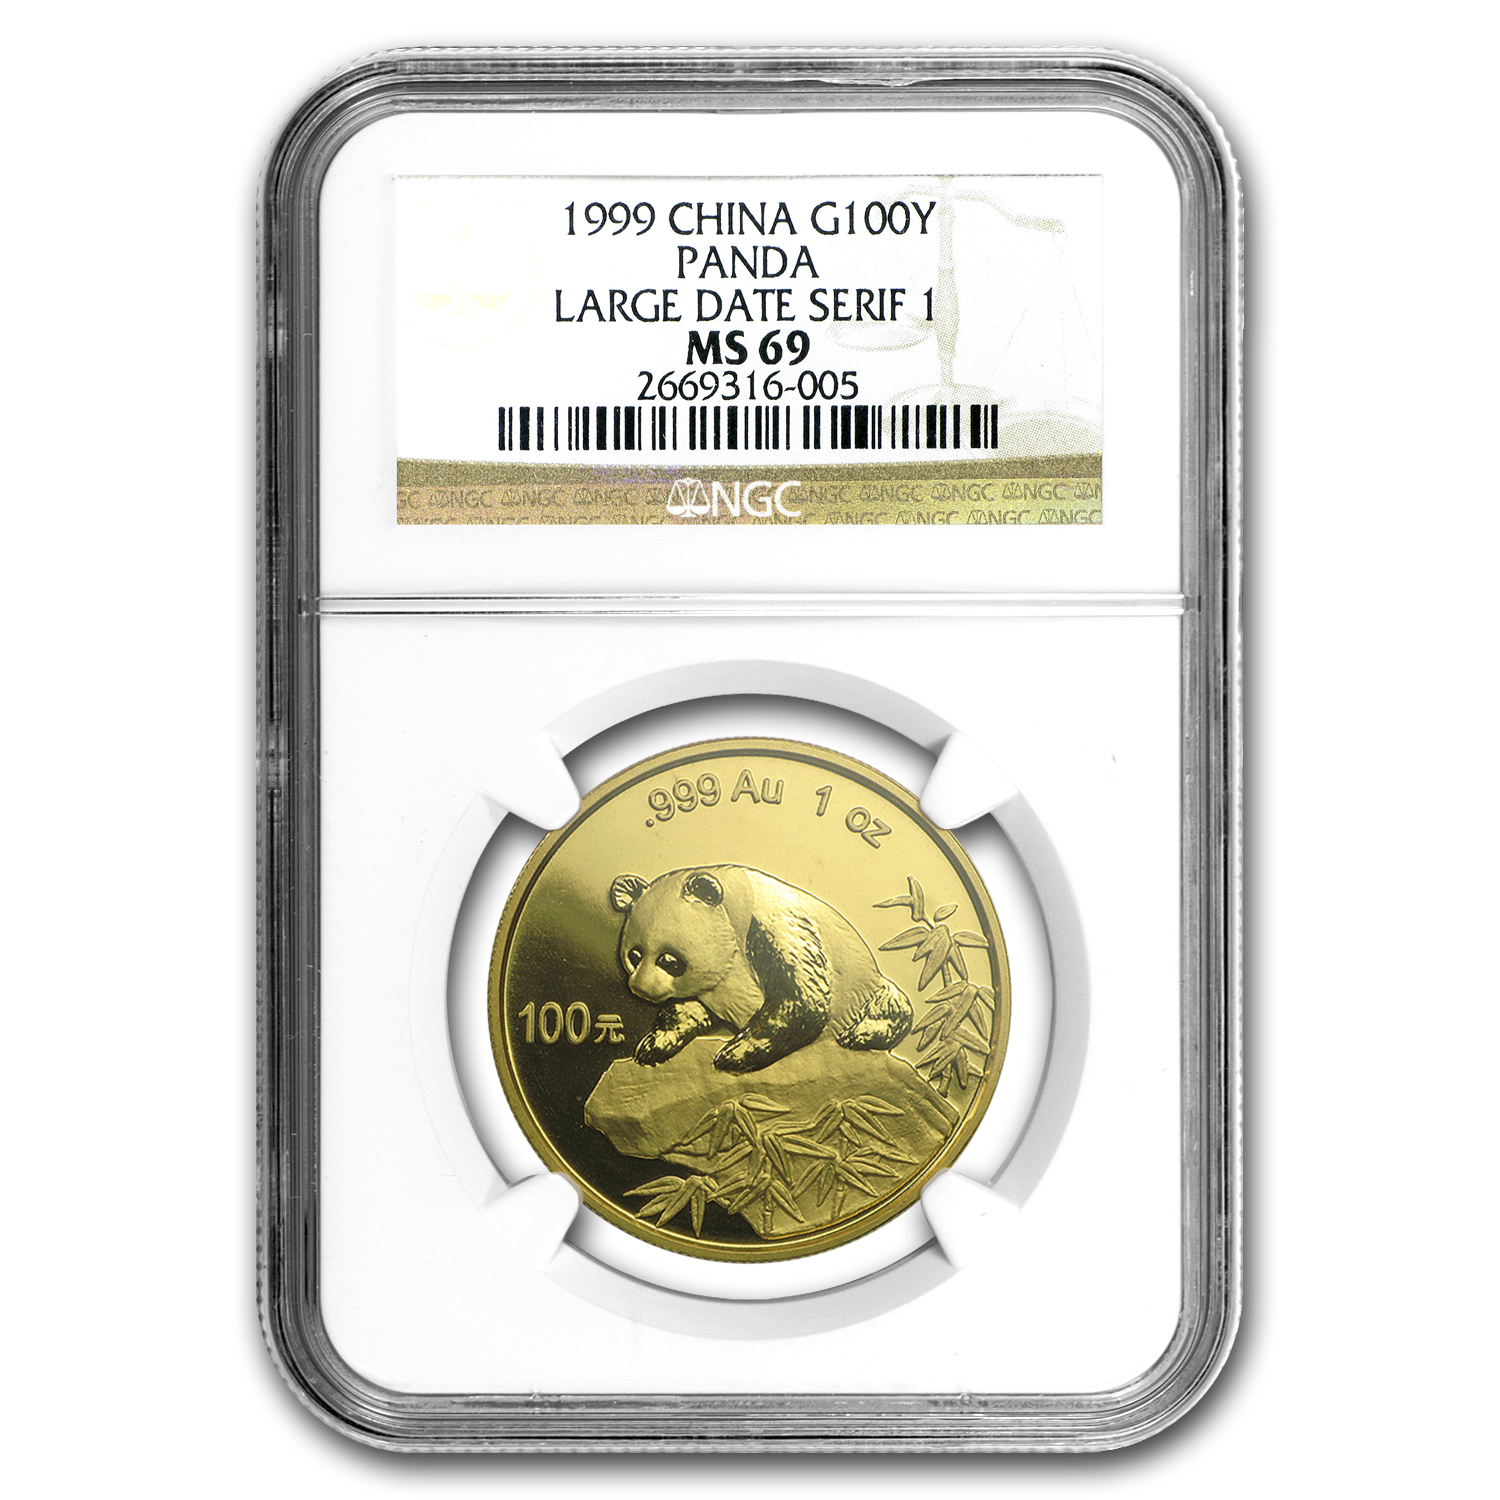 1999 China 1 oz Gold Panda Large Date/Serif 1 MS-69 NGC